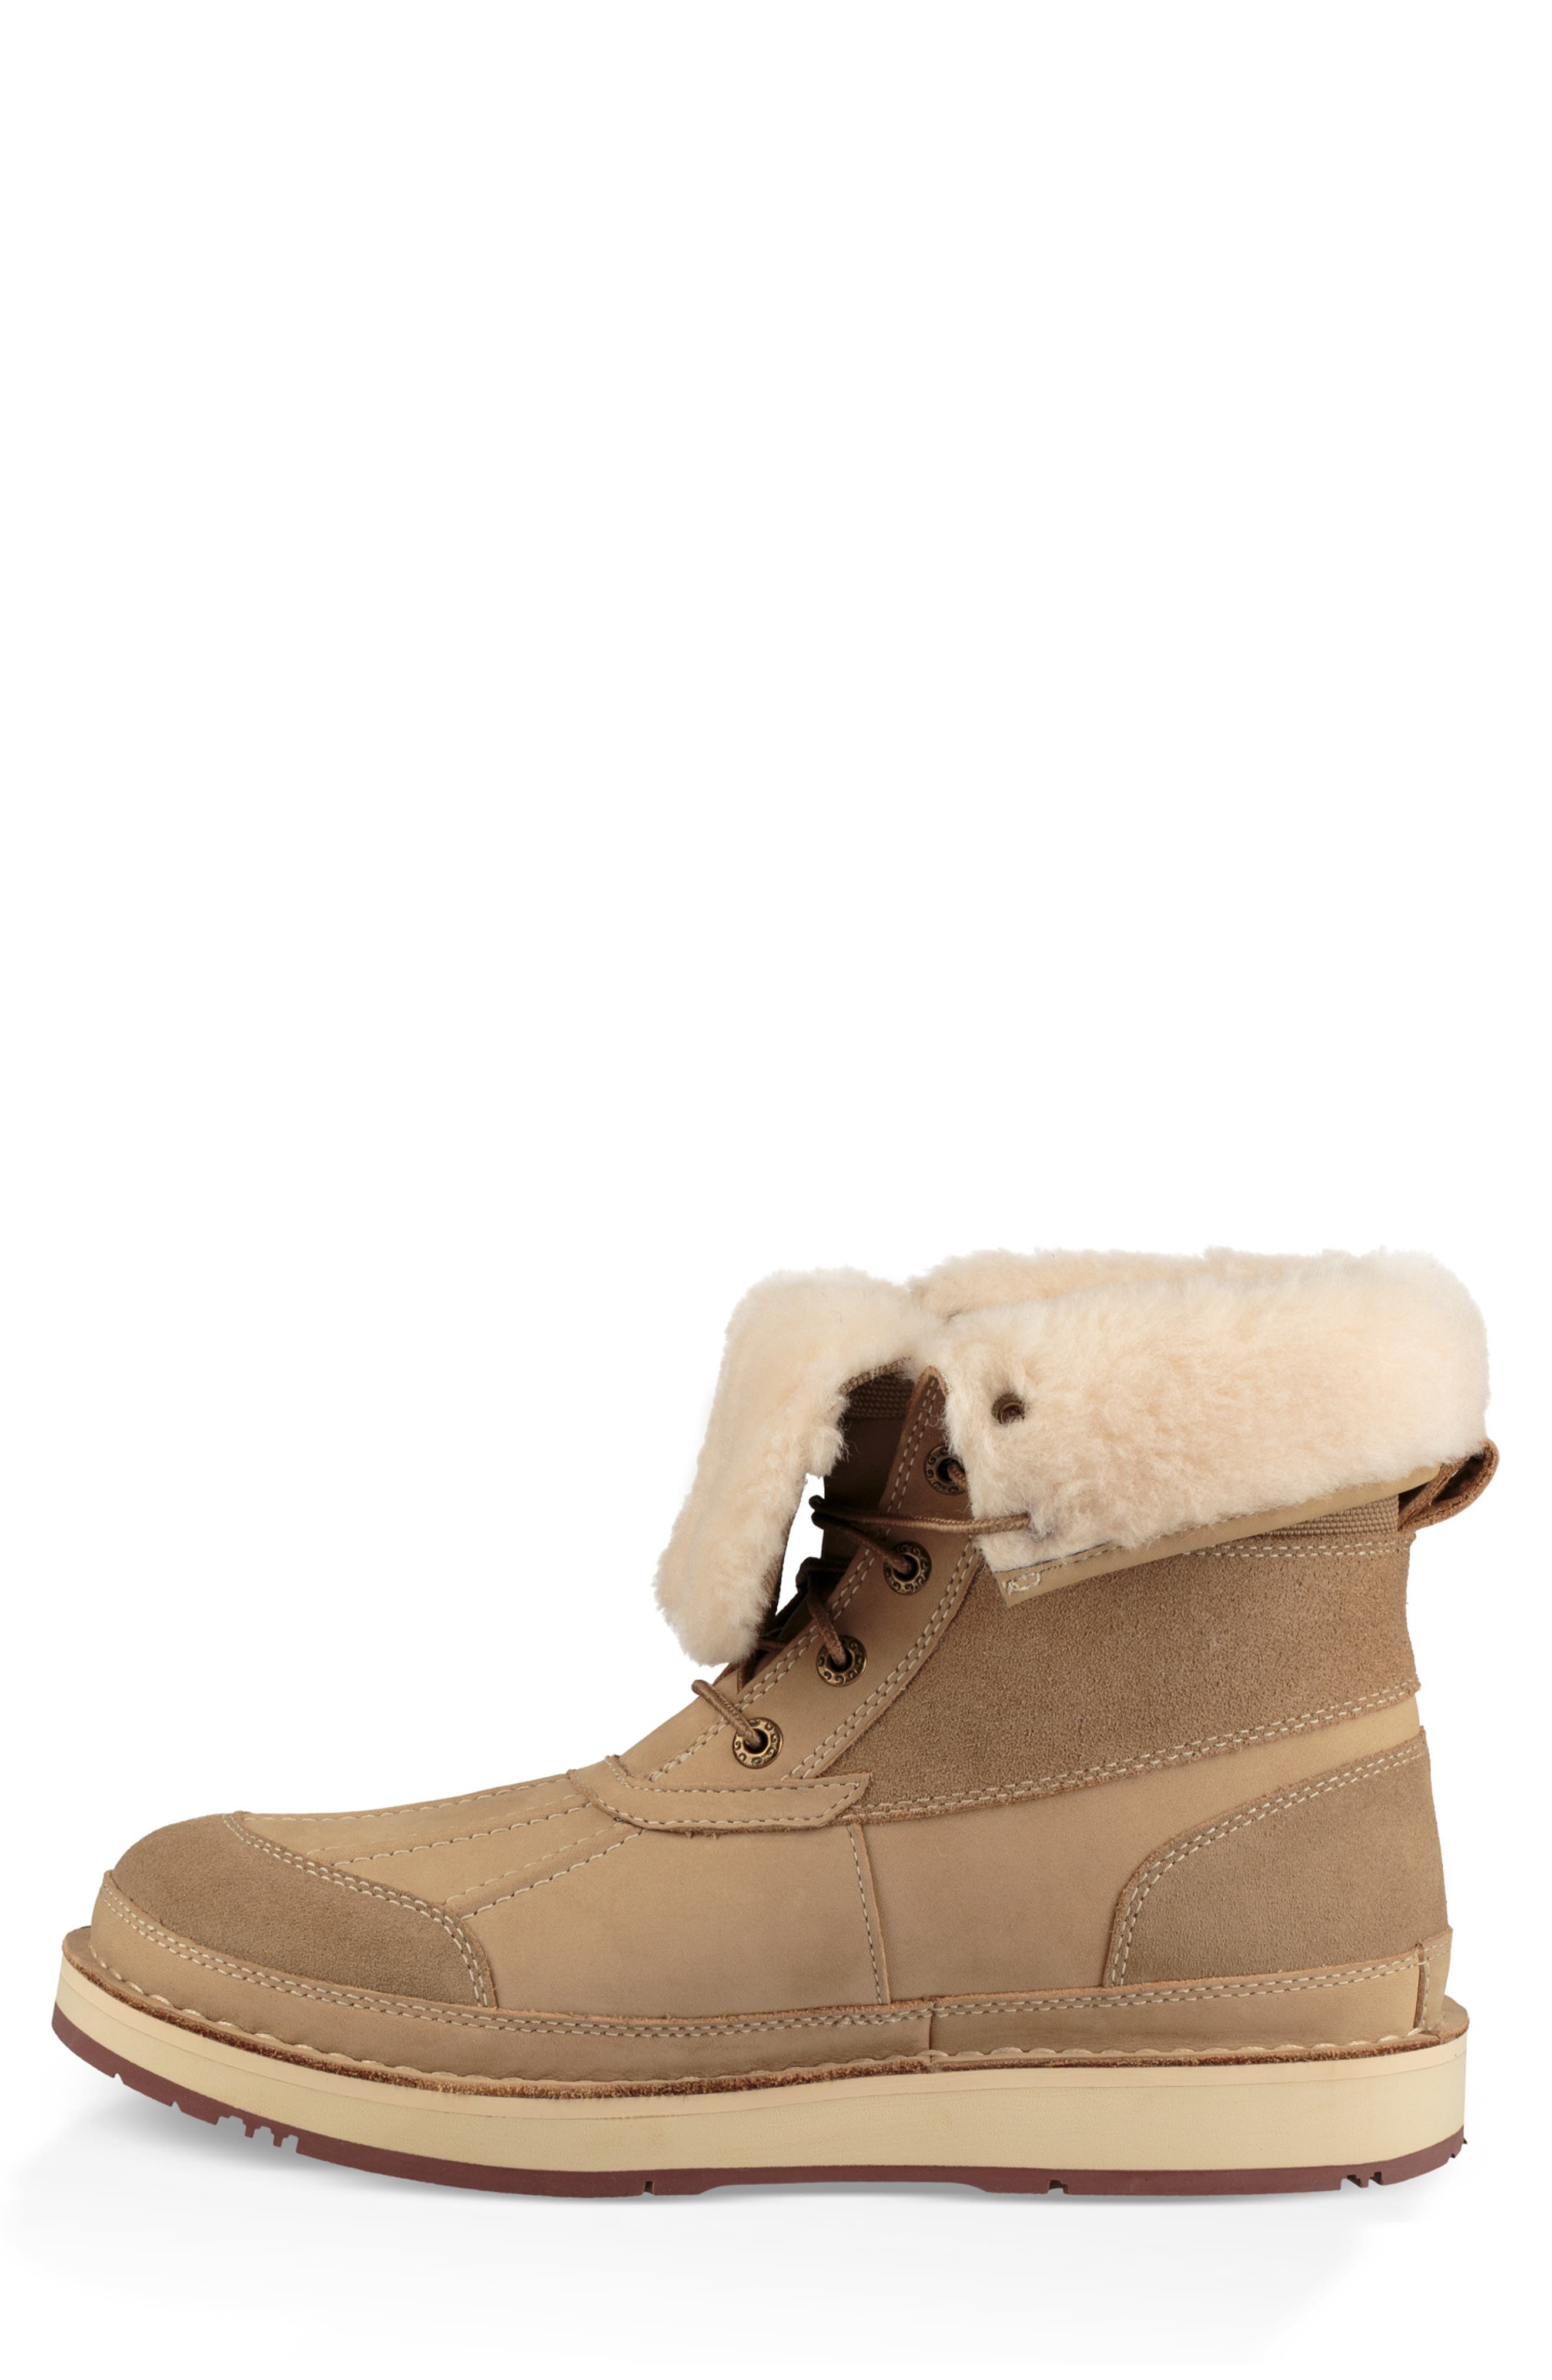 Avalanche Butte Waterproof Boot,                             Alternate thumbnail 8, color,                             DESERT TAN